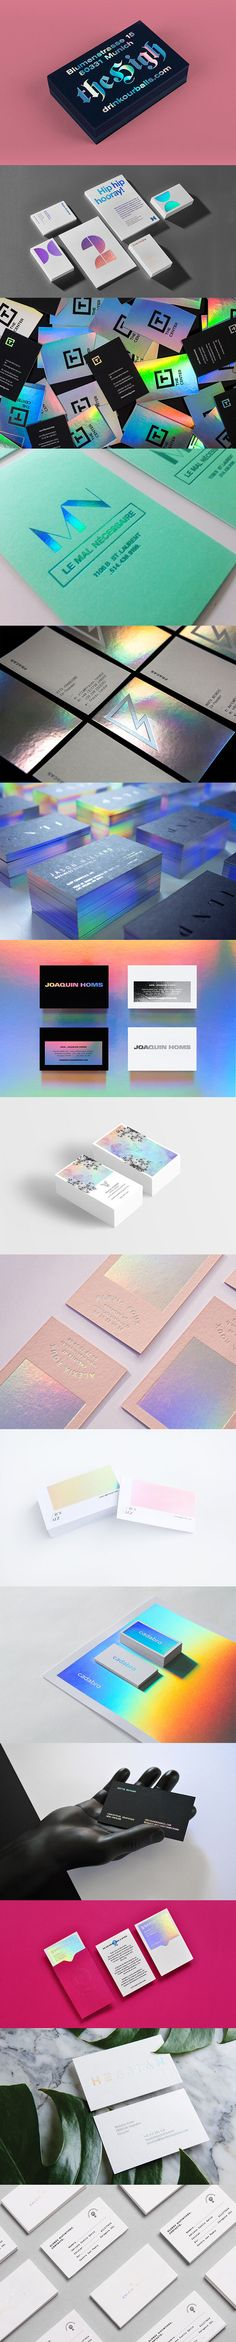 Jul 2019 - So in this post I've gathered 25 Gorgeous Holographic Business Card Designs that will leave a lasting impression. Business Card Design, Business Cards, Freelance Graphic Design, Corporate Identity, Holographic, Design Inspiration, Design Ideas, Packaging Design, Branding